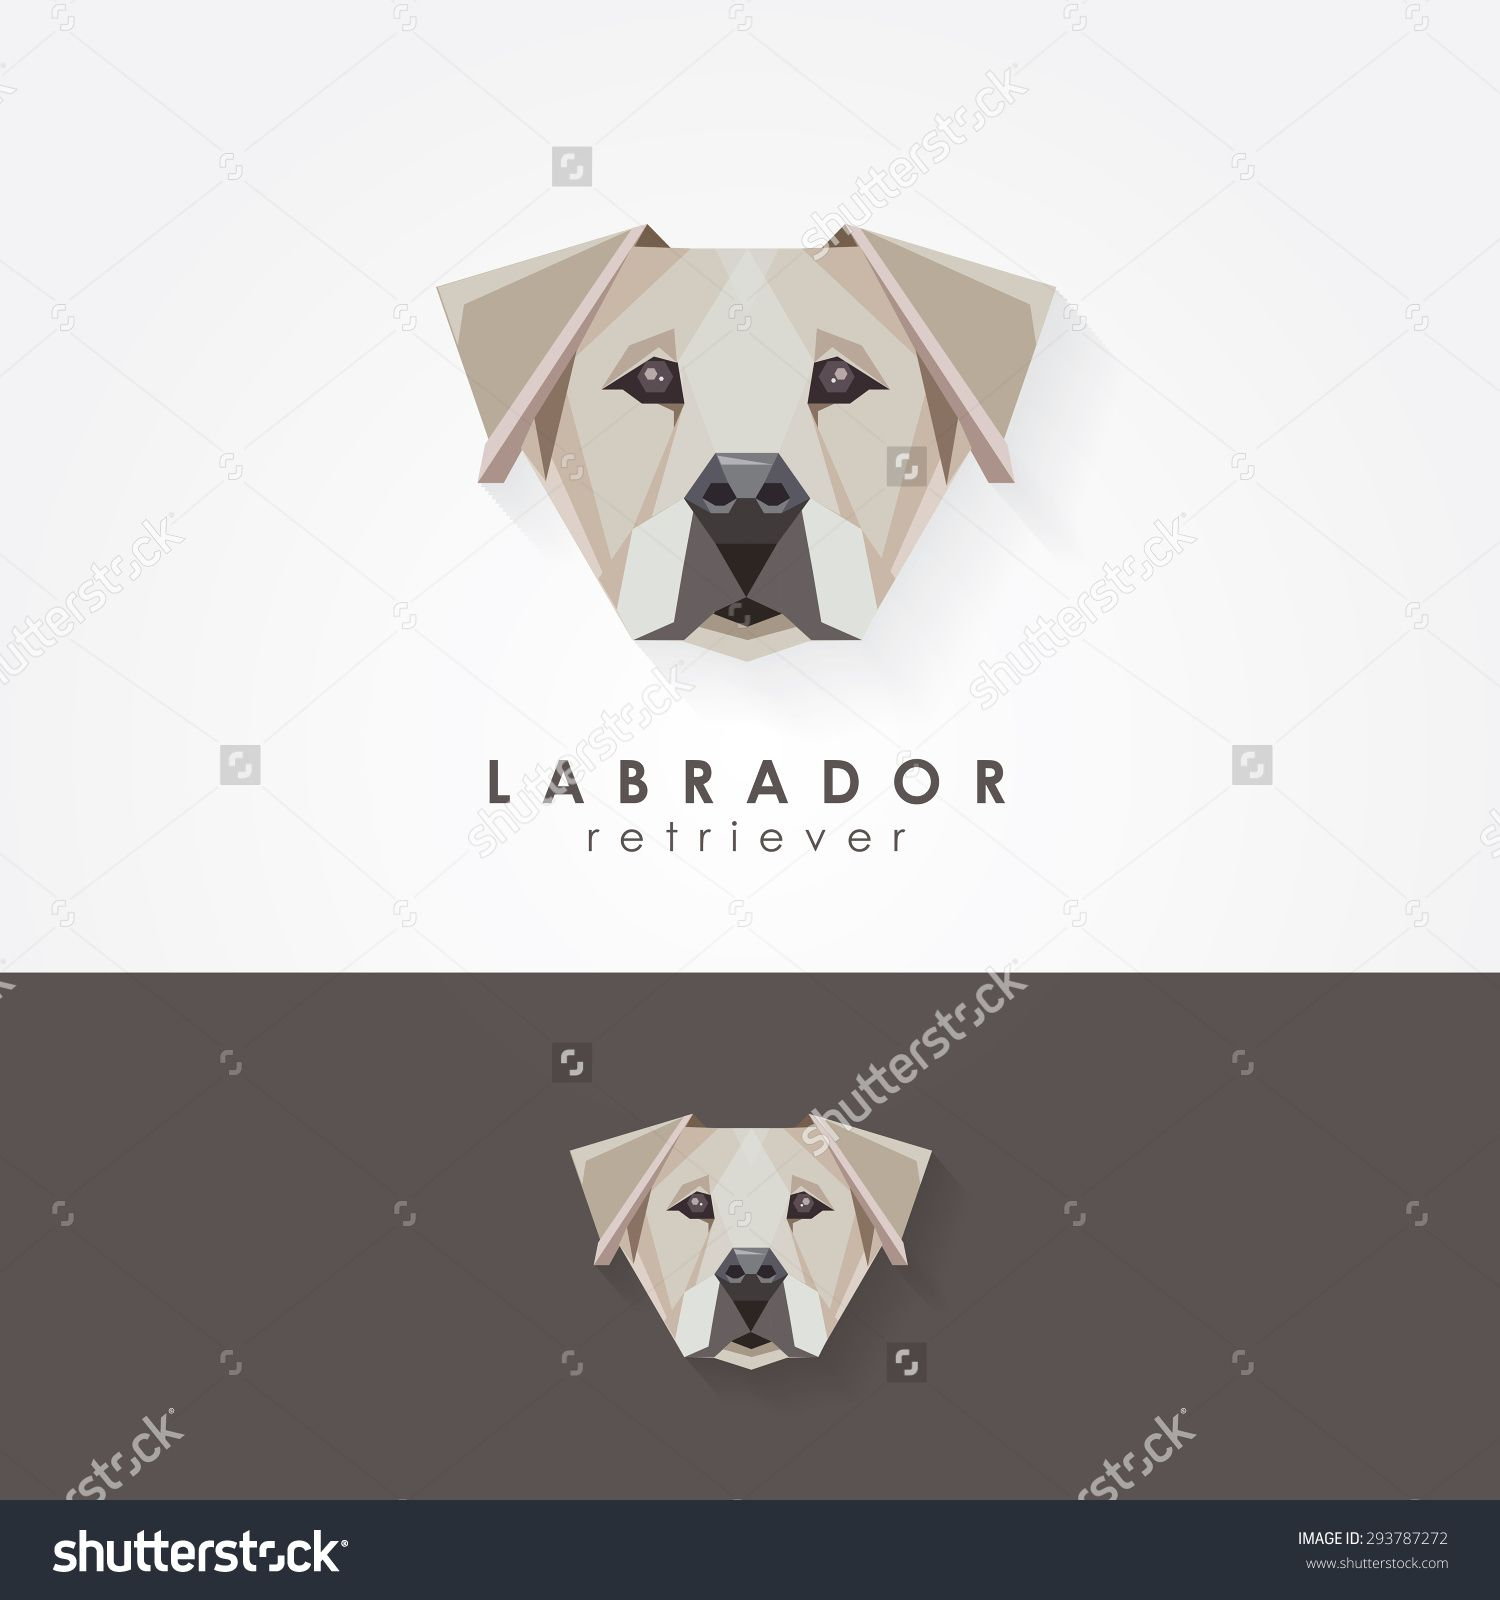 Labrador Retriever Polygonal Geometric Contemporary Logo Icon